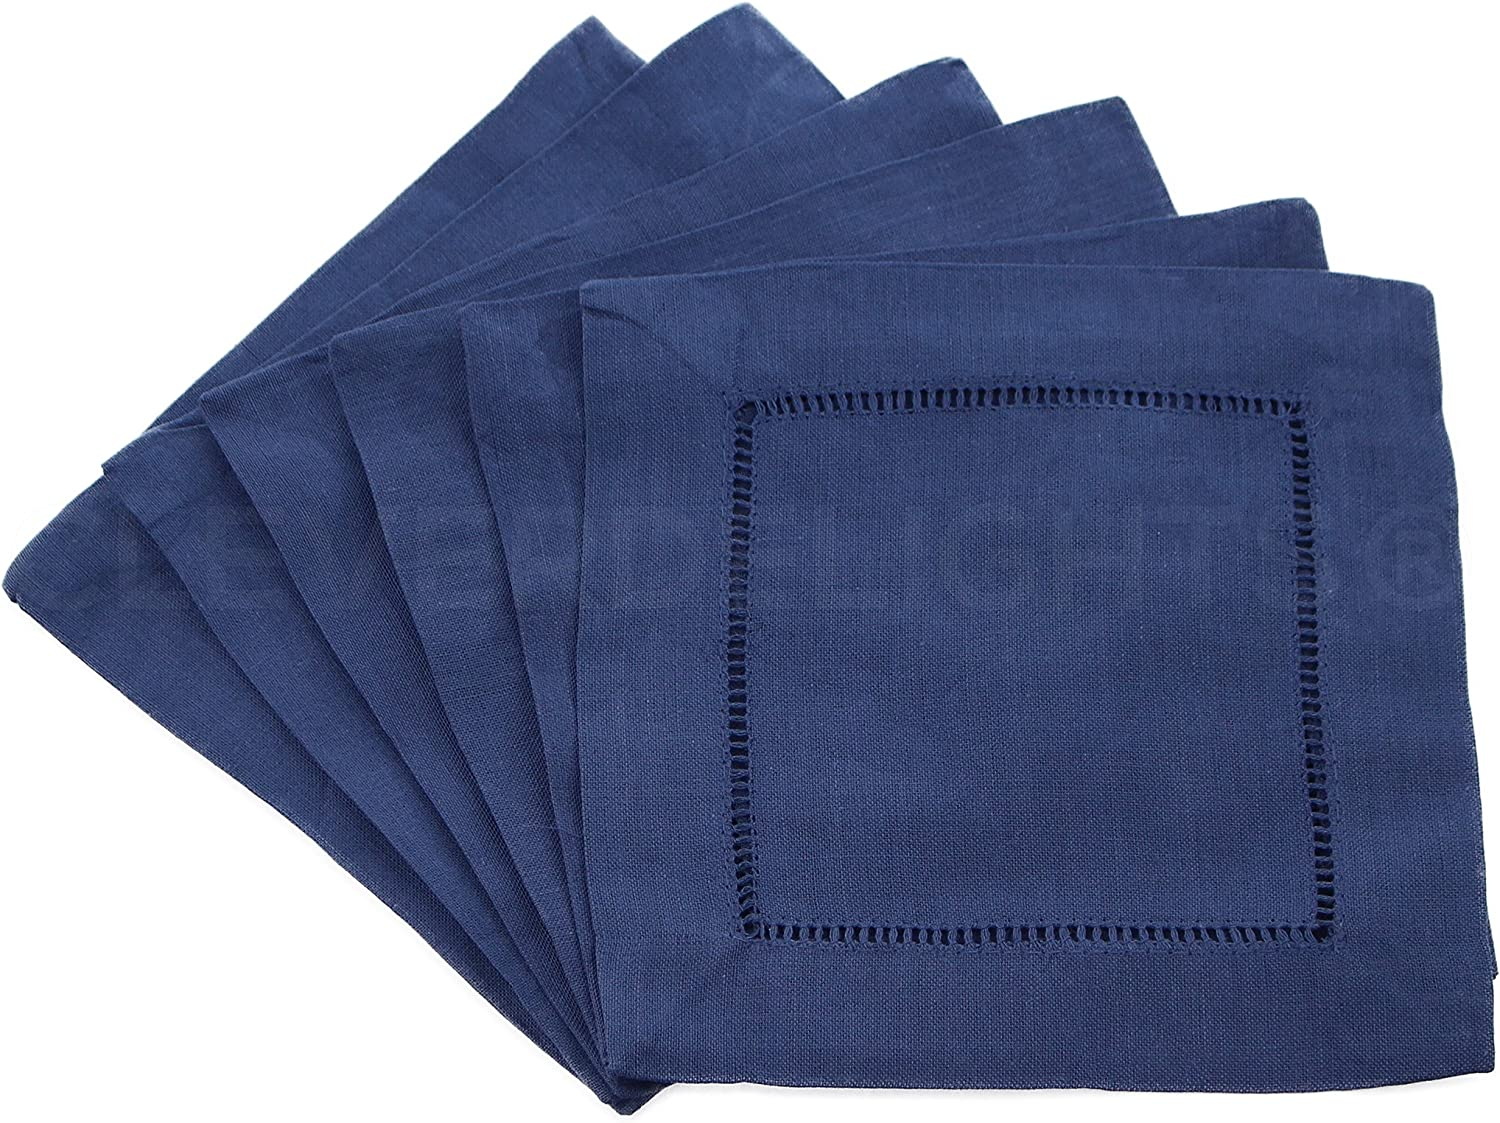 "12 CleverDelights Navy Hemstitch Cocktail Napkins - 6"" x 6"" - 45/55 Cotton Linen Blend - Ladder Hemstitch Beverage Napkins - Dark Blue 6 Inch Coaster"